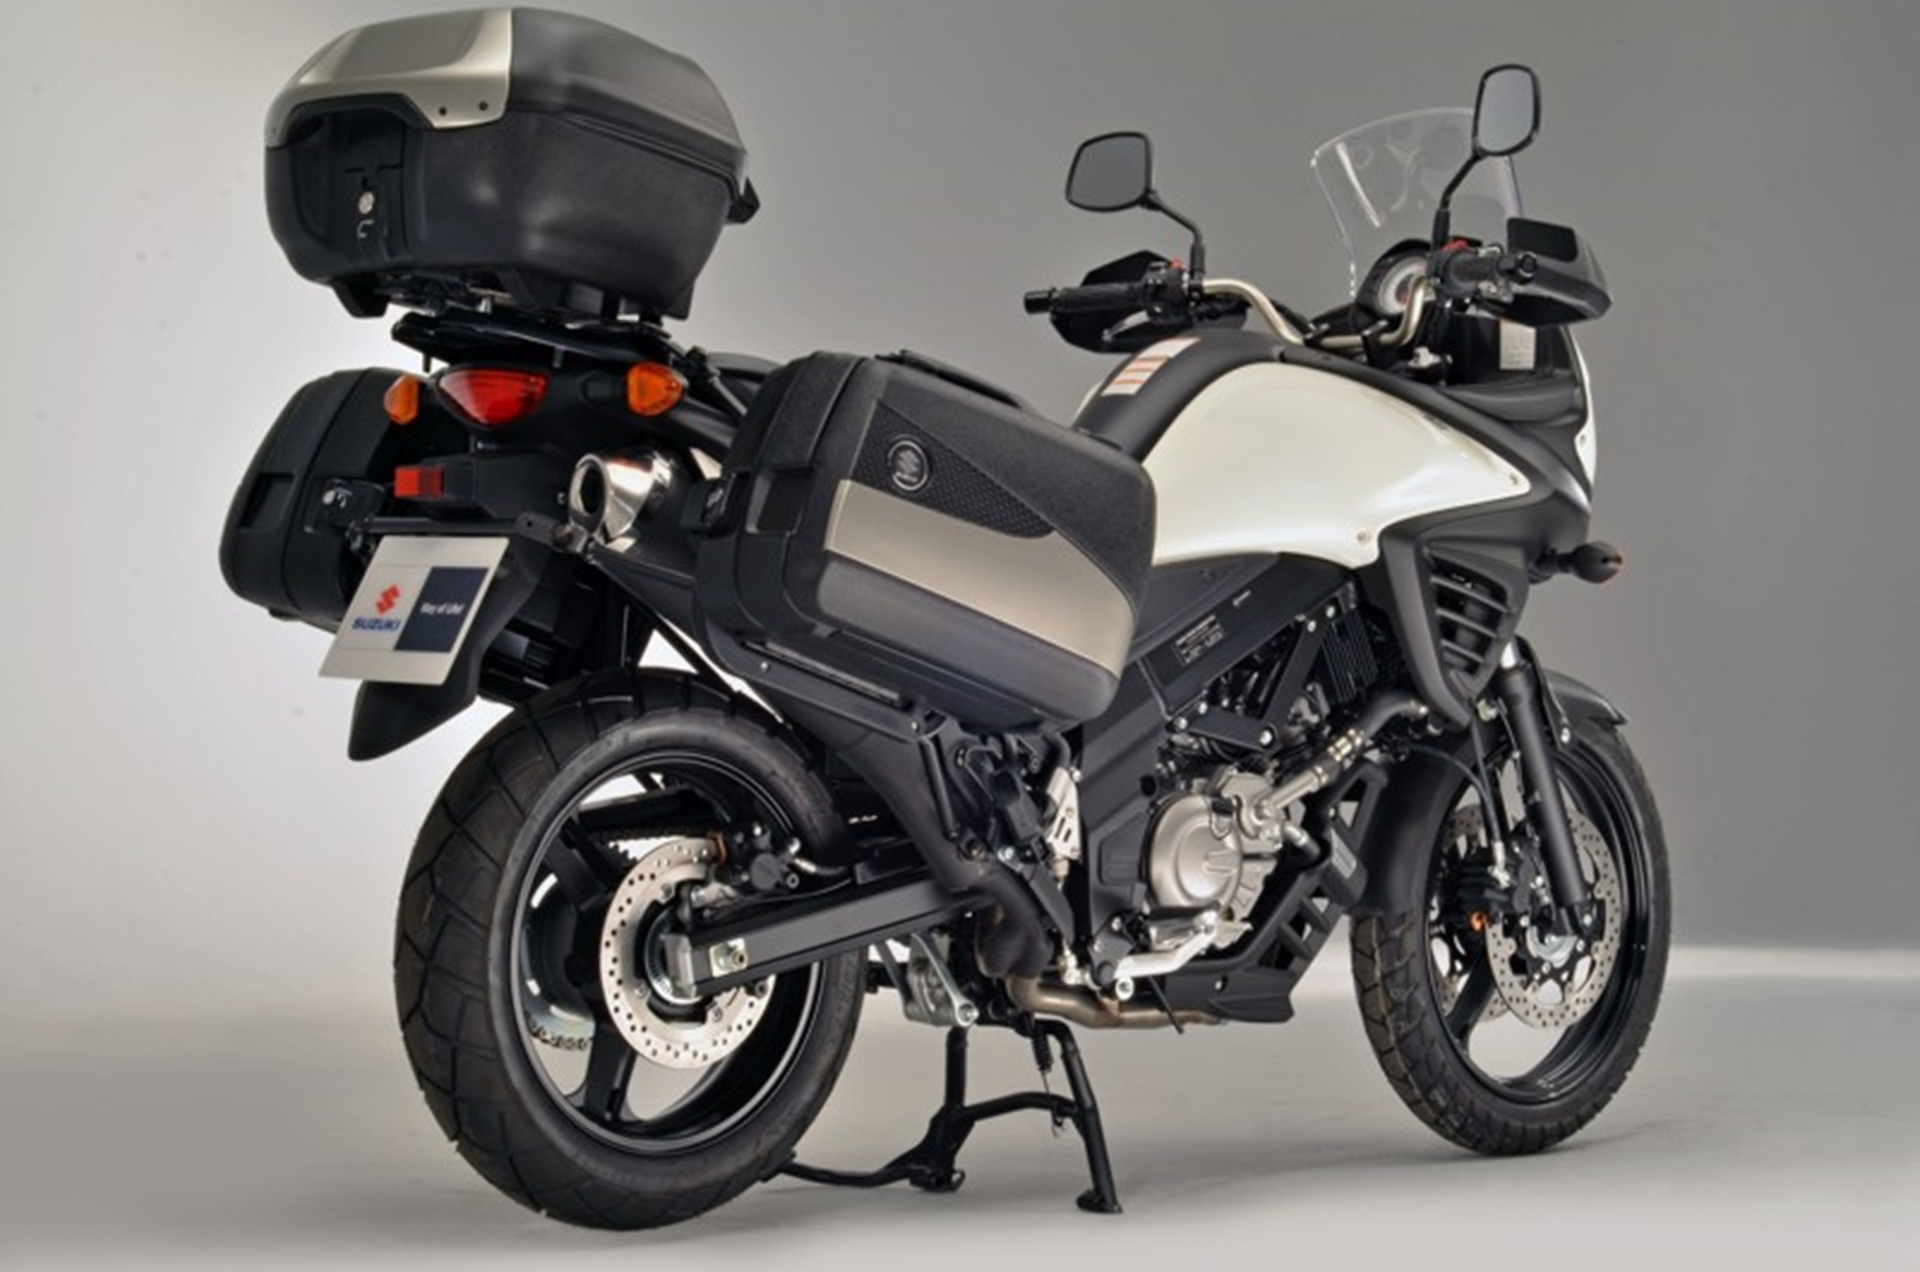 The new range of V-Strom 650 ABS Accessory Packs